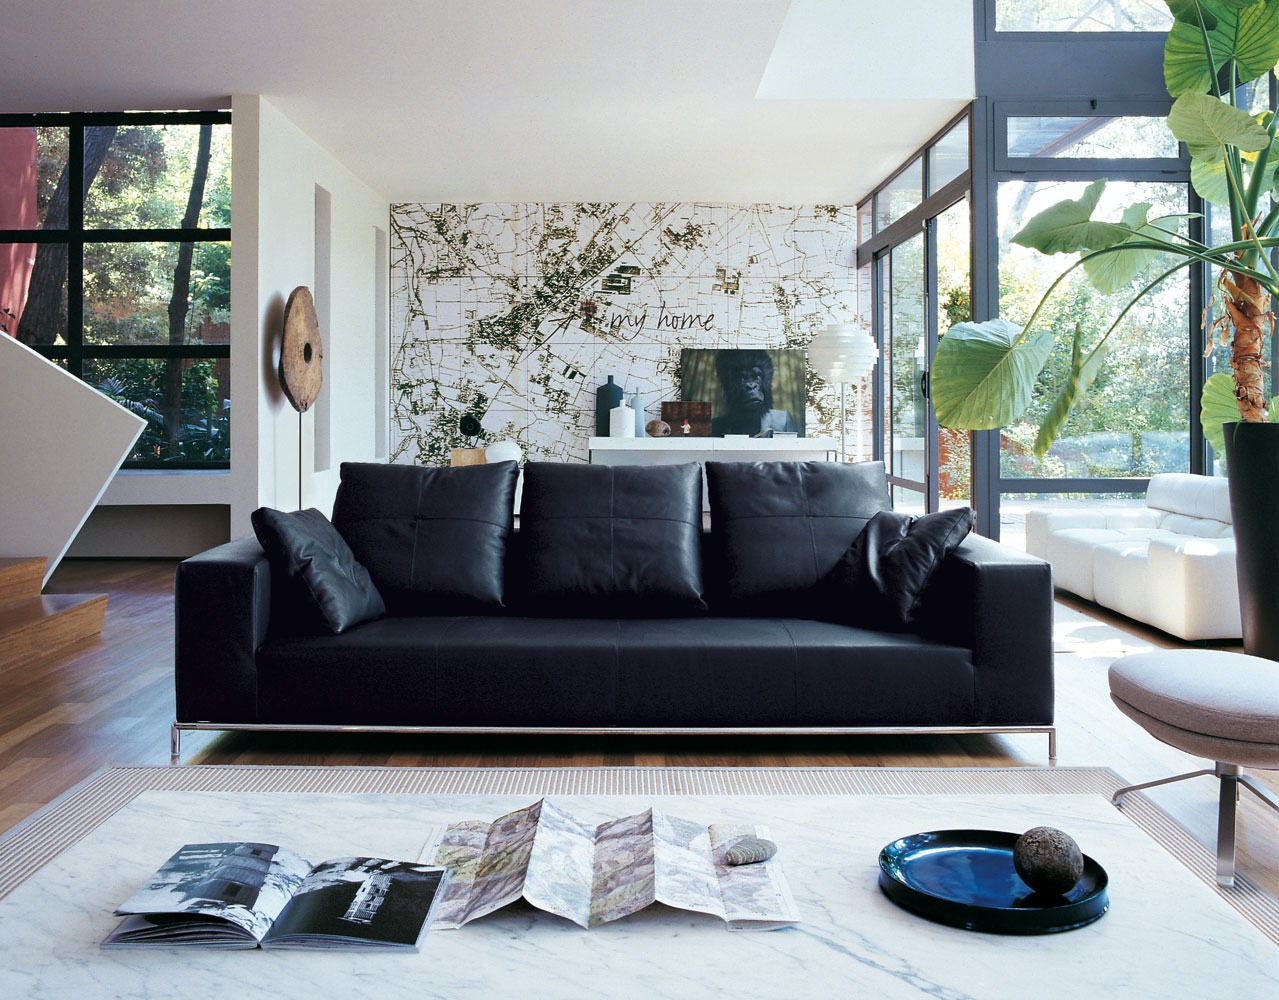 black leather sofa interior design ideas rh home designing com interior decorating ideas black leather sofa